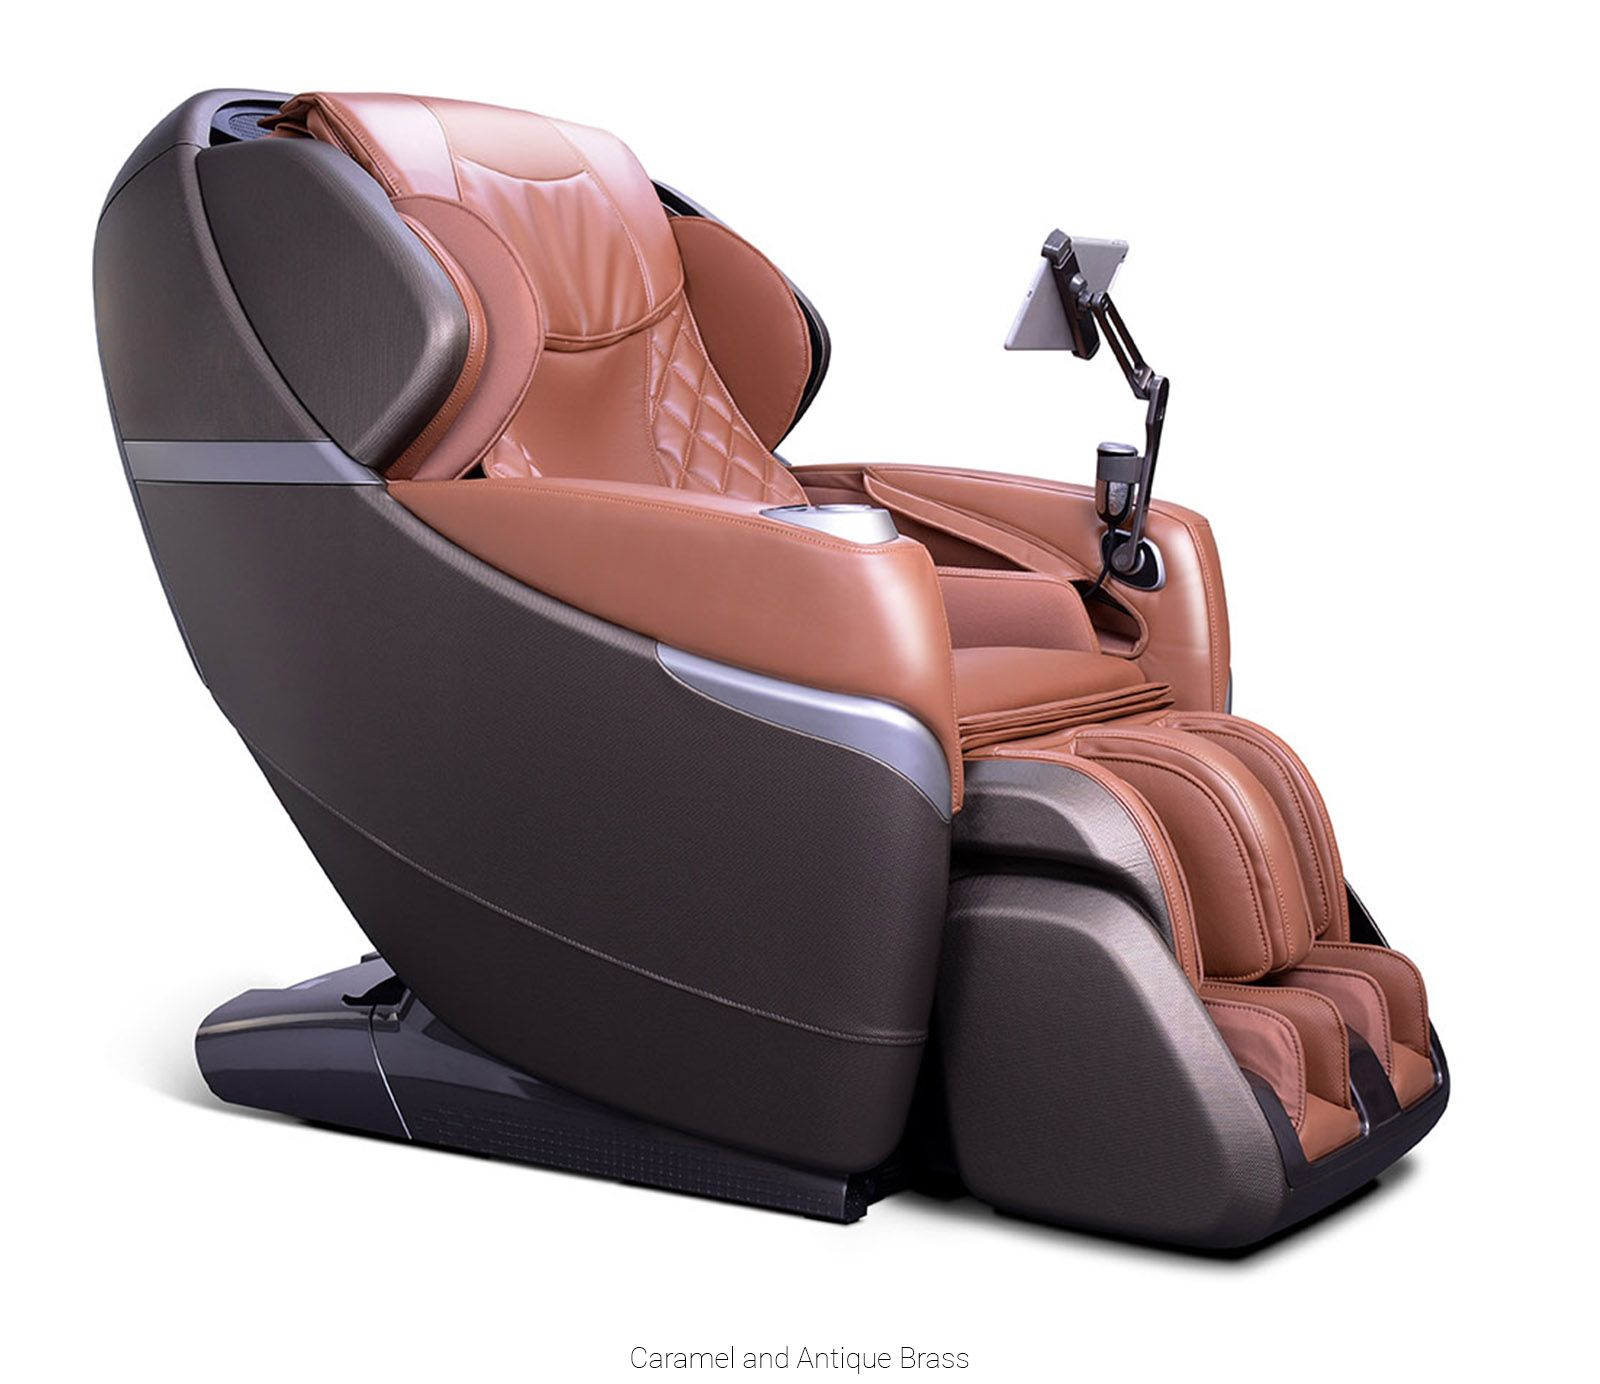 Cz730 qi your personal chair doctor massage chair